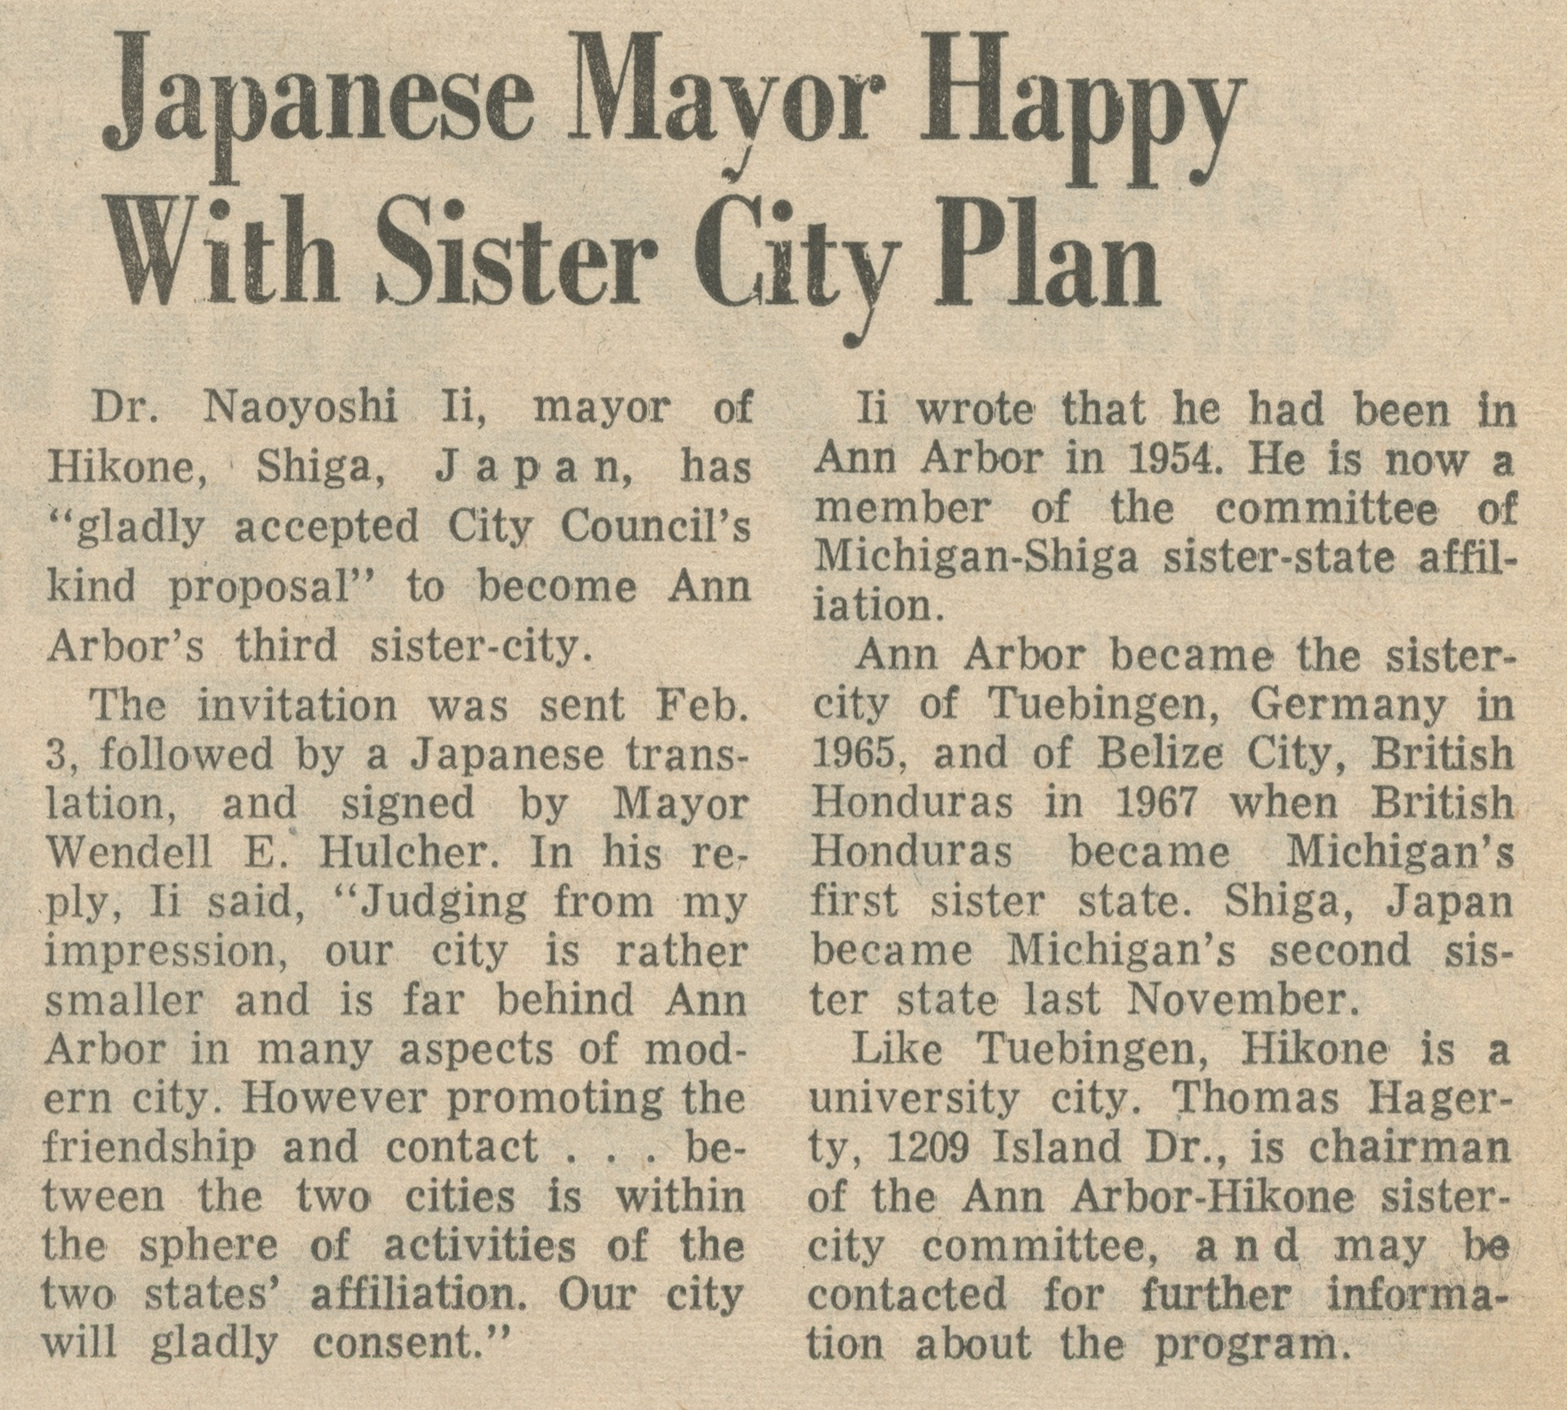 Japanese Mayor Happy With Sister City Plan image